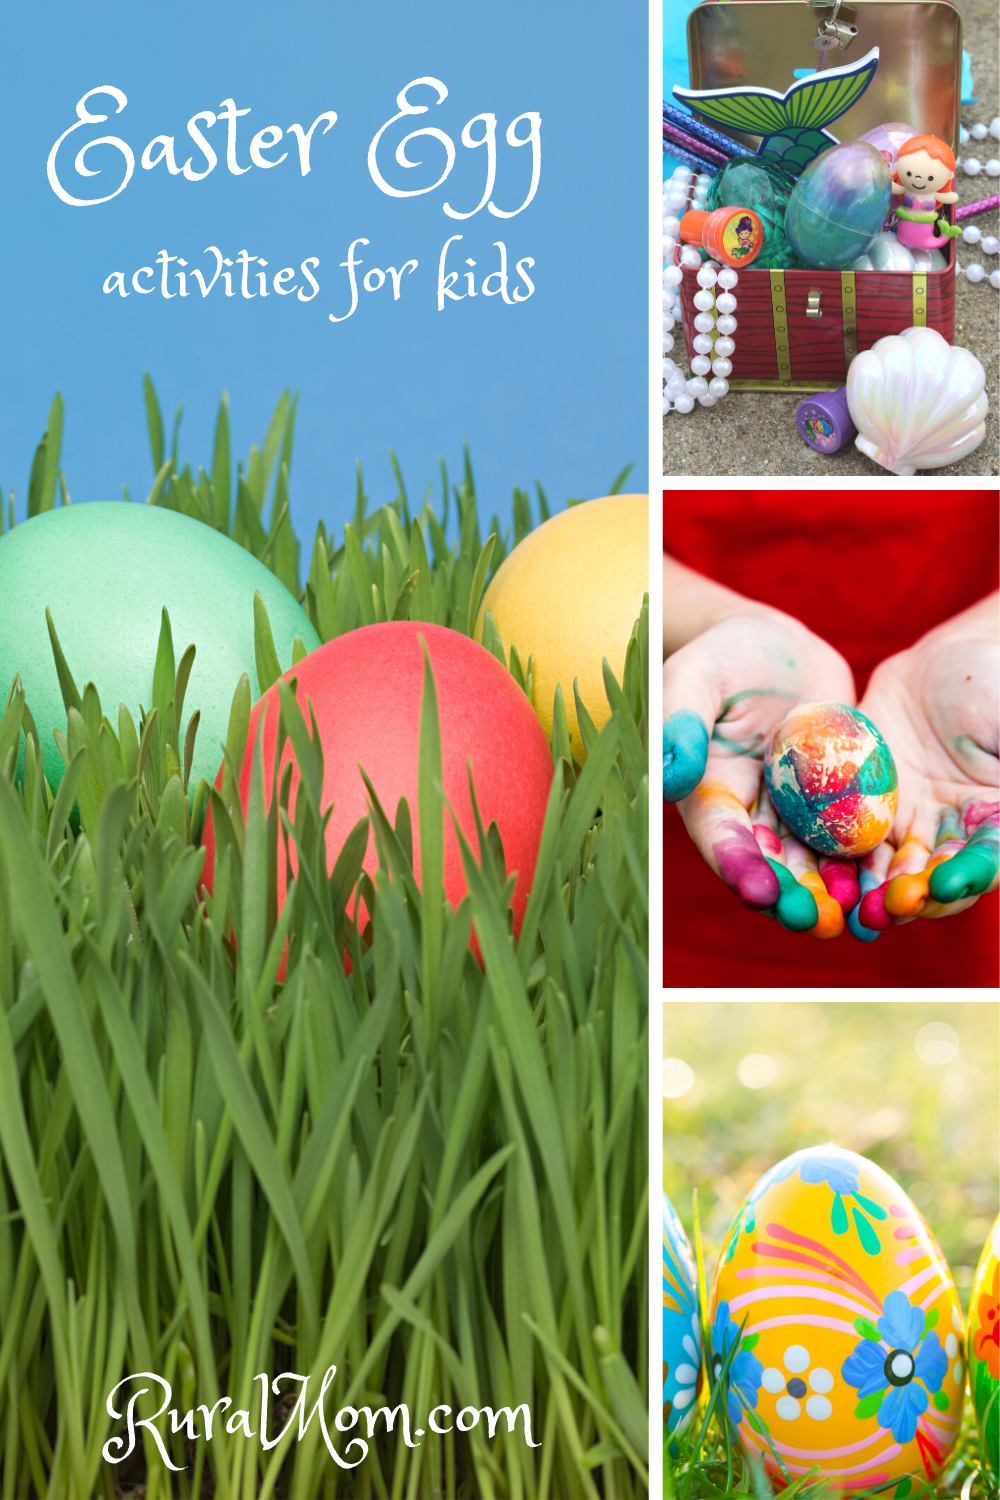 Easter Egg Activity Ideas for Kids